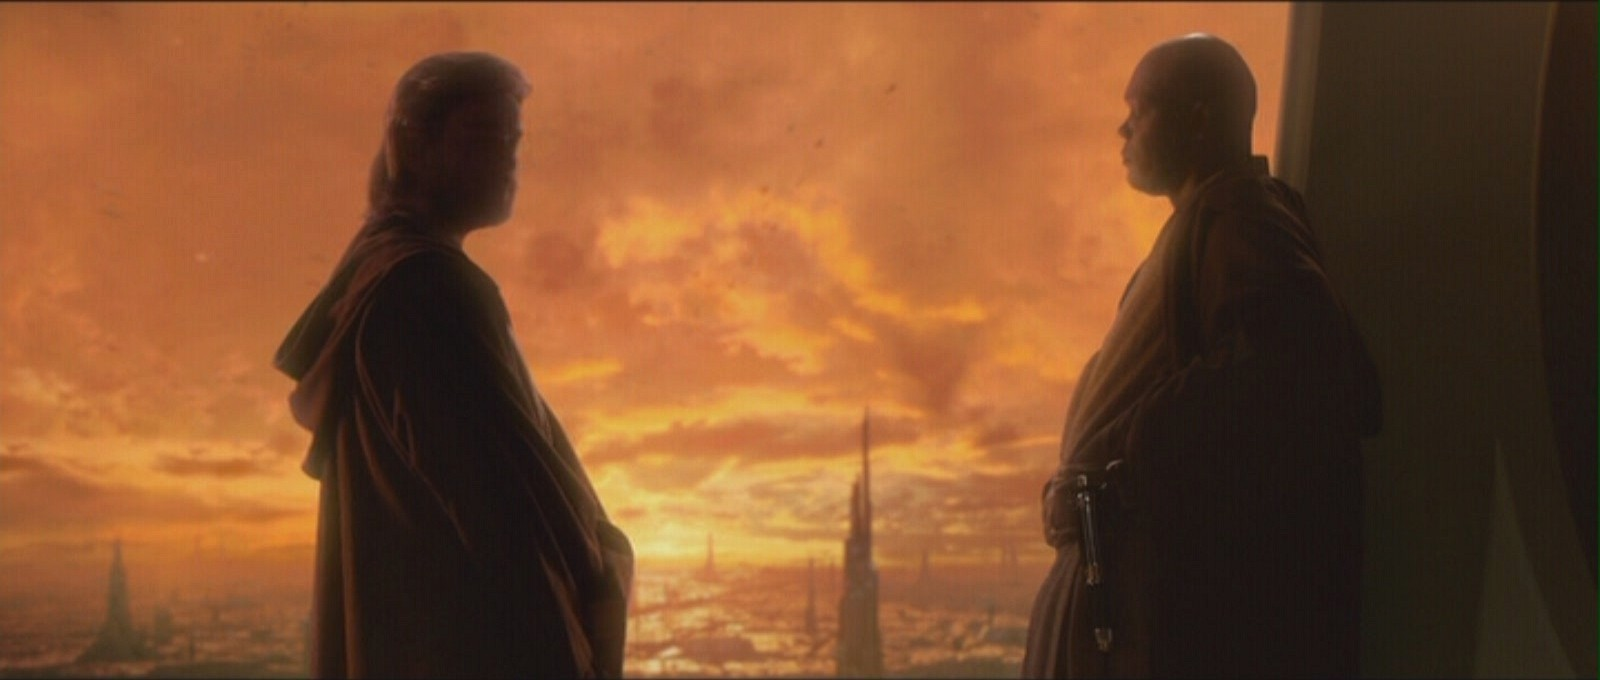 Mace Windu Images Star Wars Attack Of The Clones Hd Wallpaper And